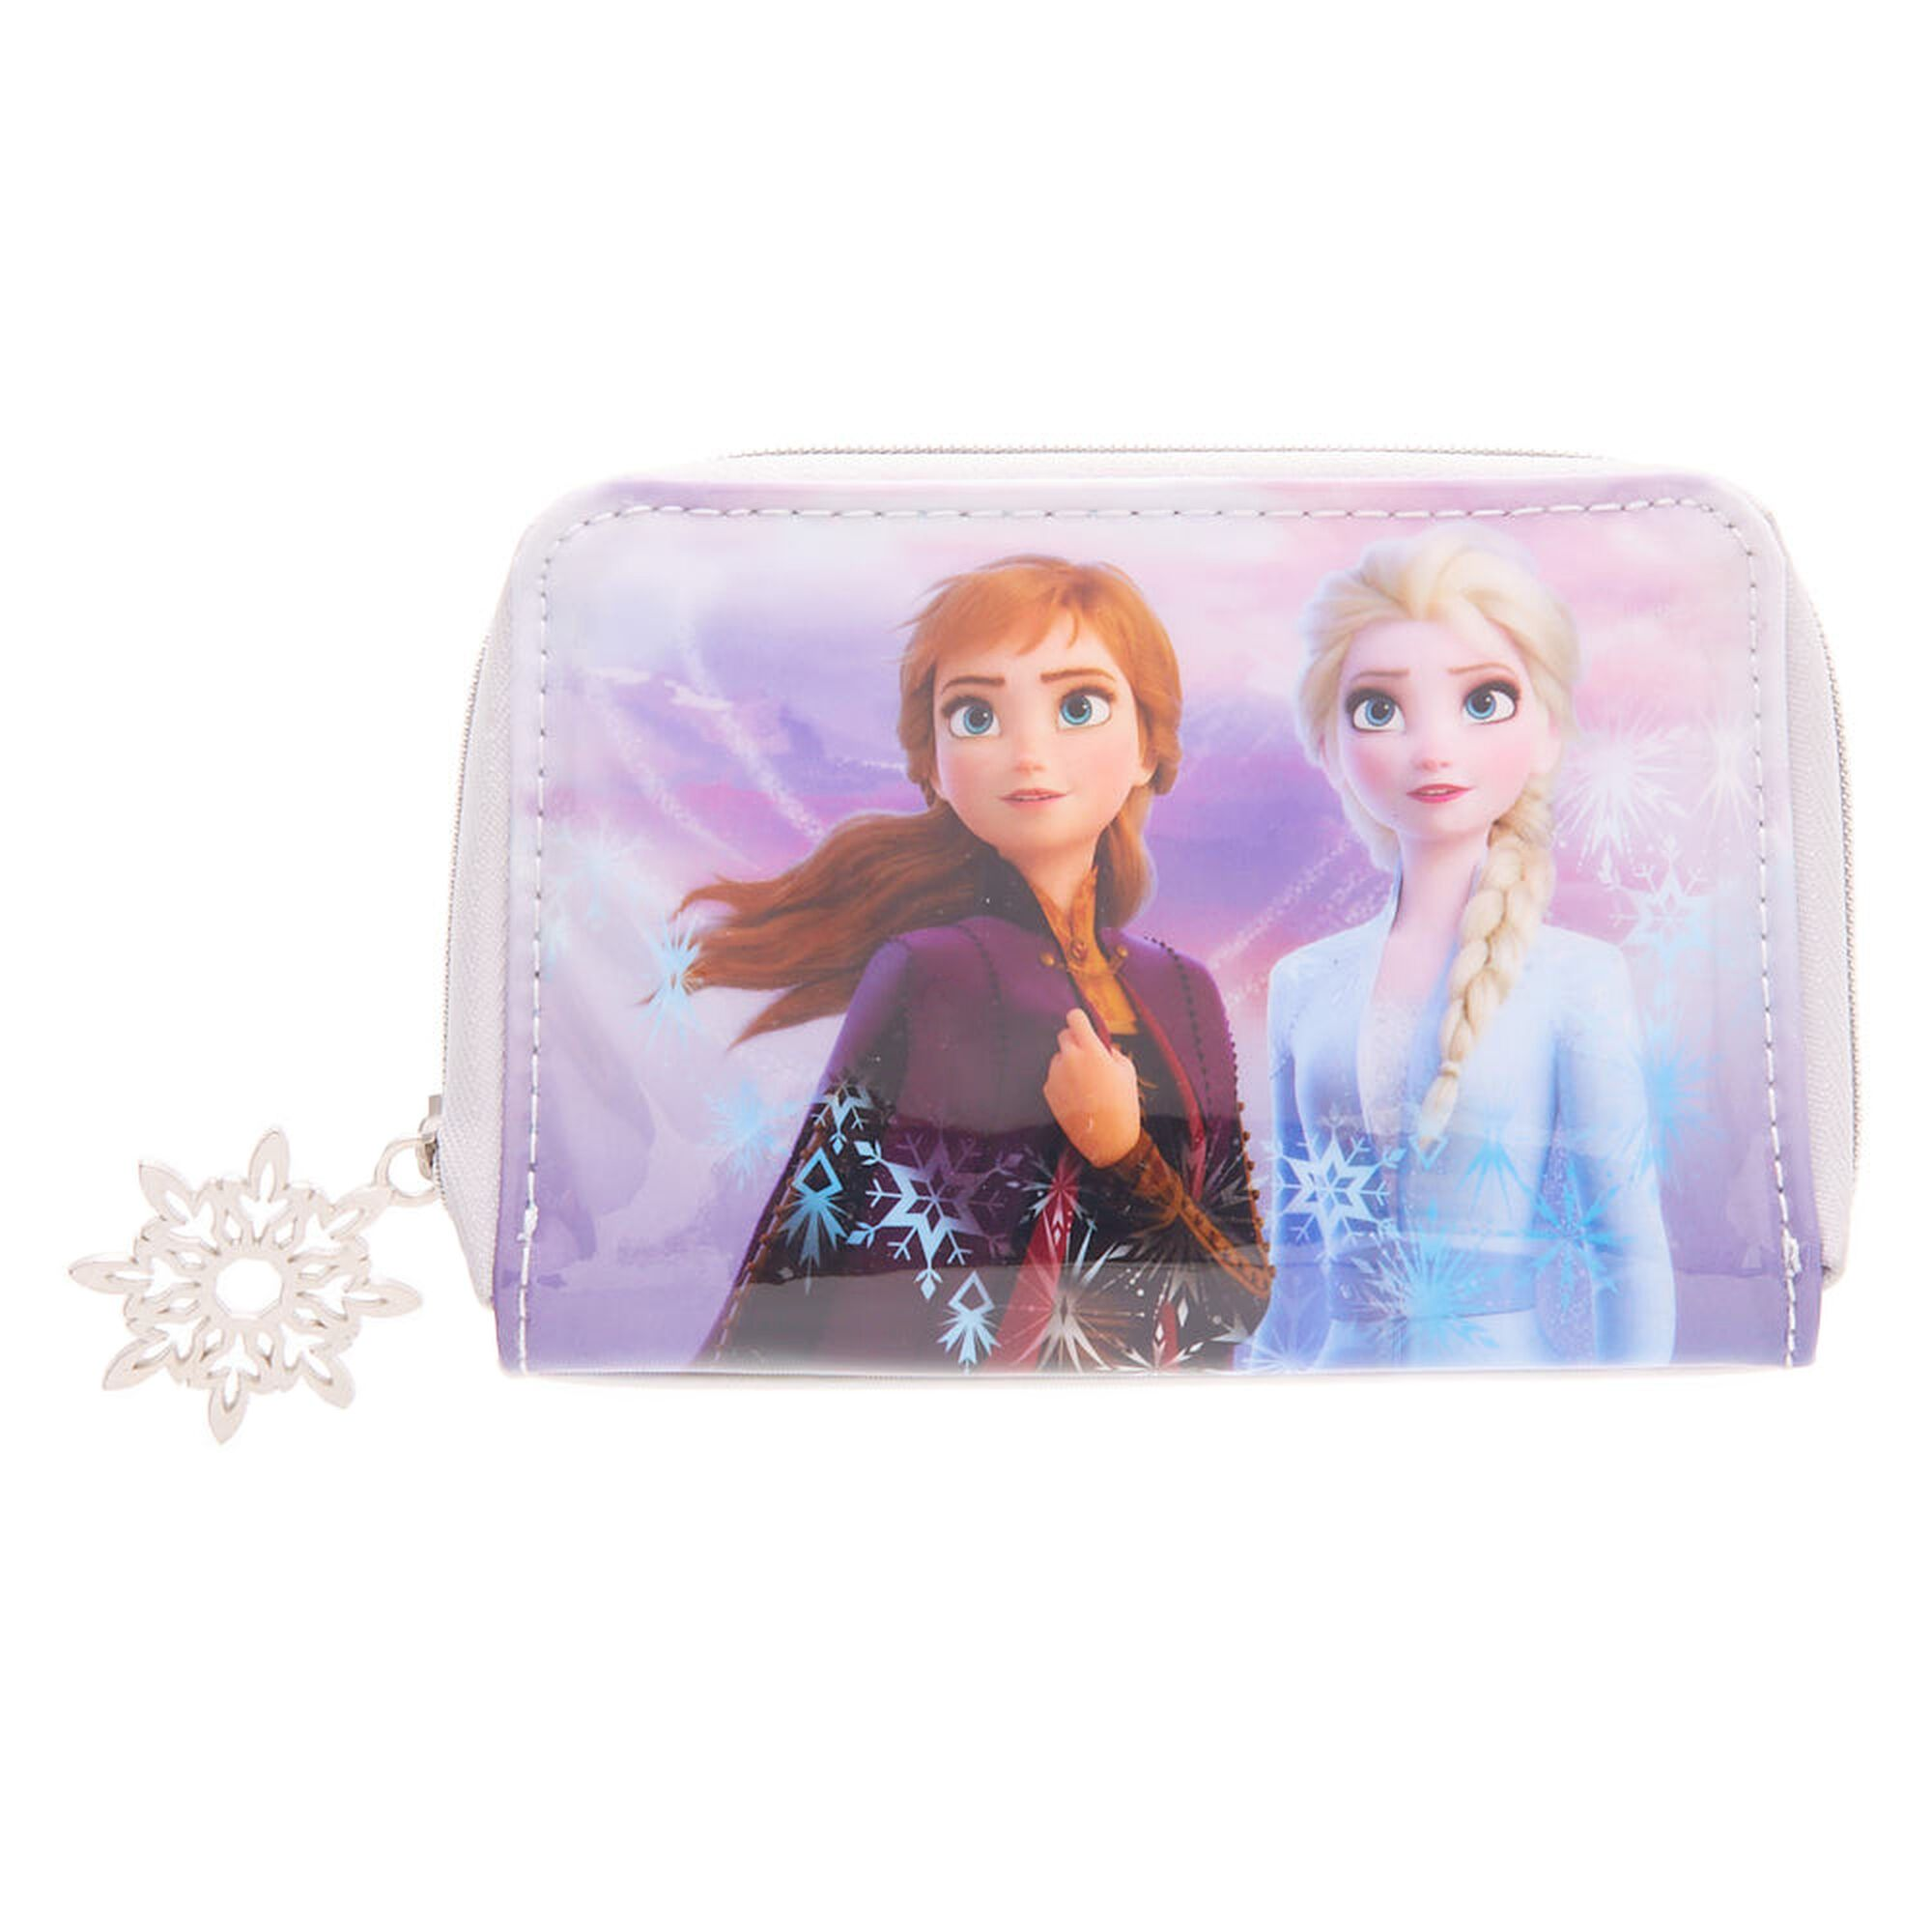 Disney Frozen Elsa and Anna Girl/'s Glitter Heart Stud Earring Set of 2 New